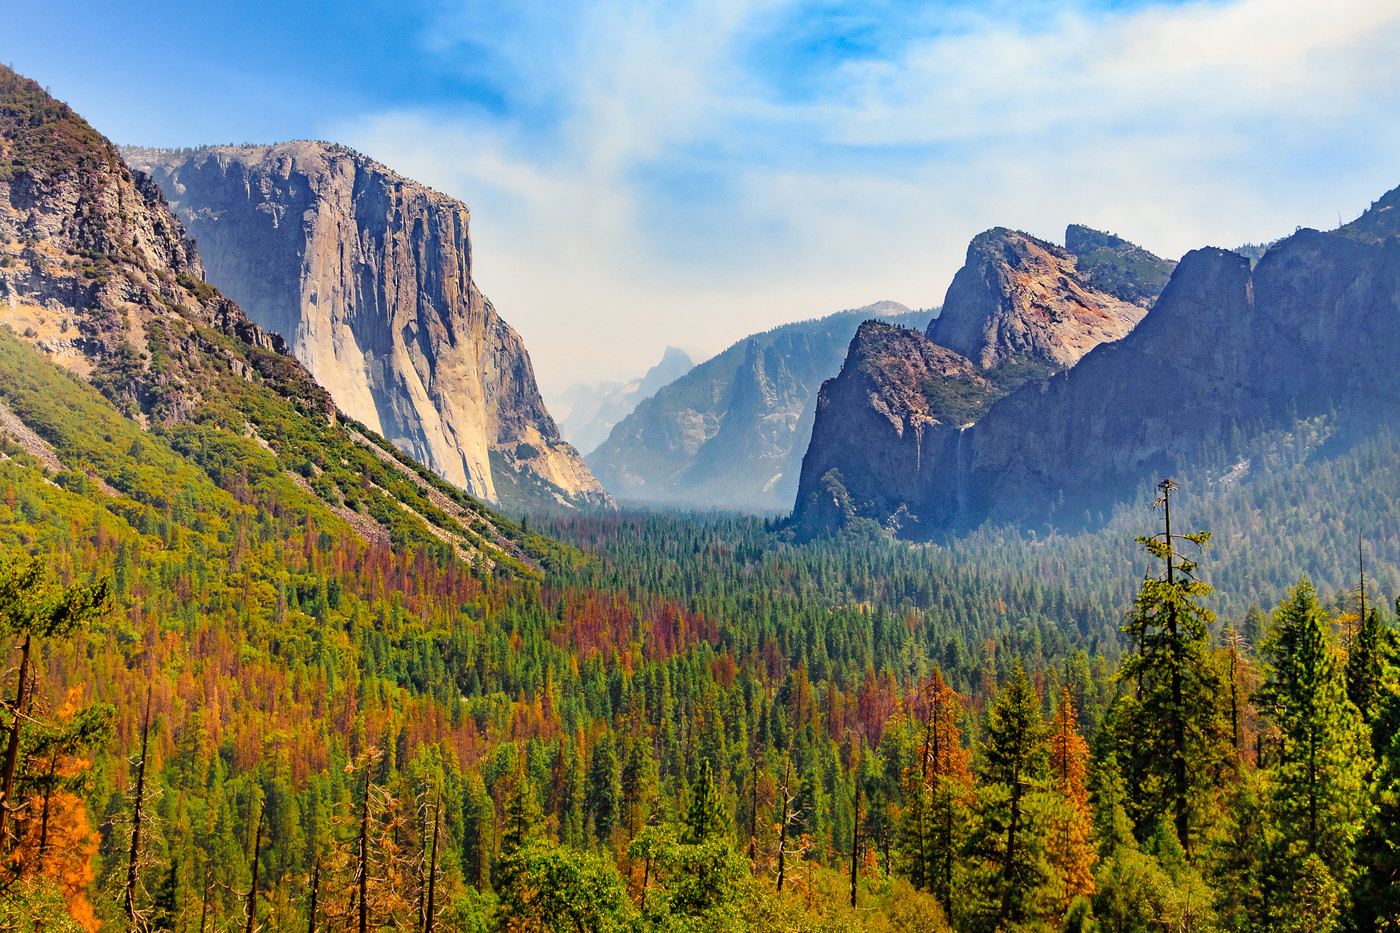 Tunnel View, View